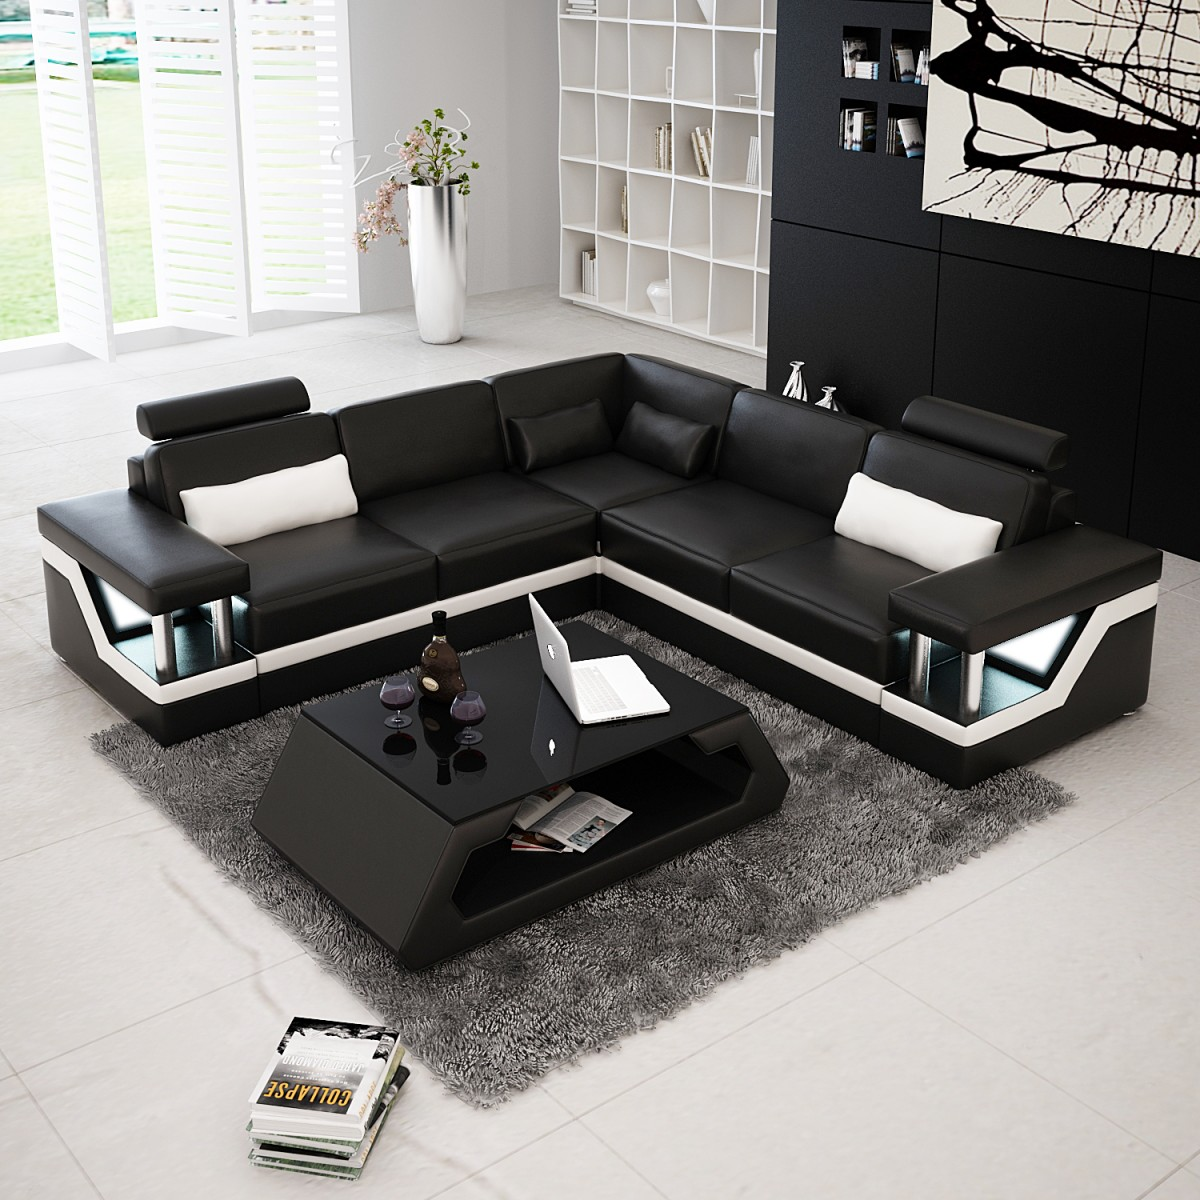 canap d 39 angle design en cuir v ritable tosca l lit convertible option canap s d 39 angle en. Black Bedroom Furniture Sets. Home Design Ideas